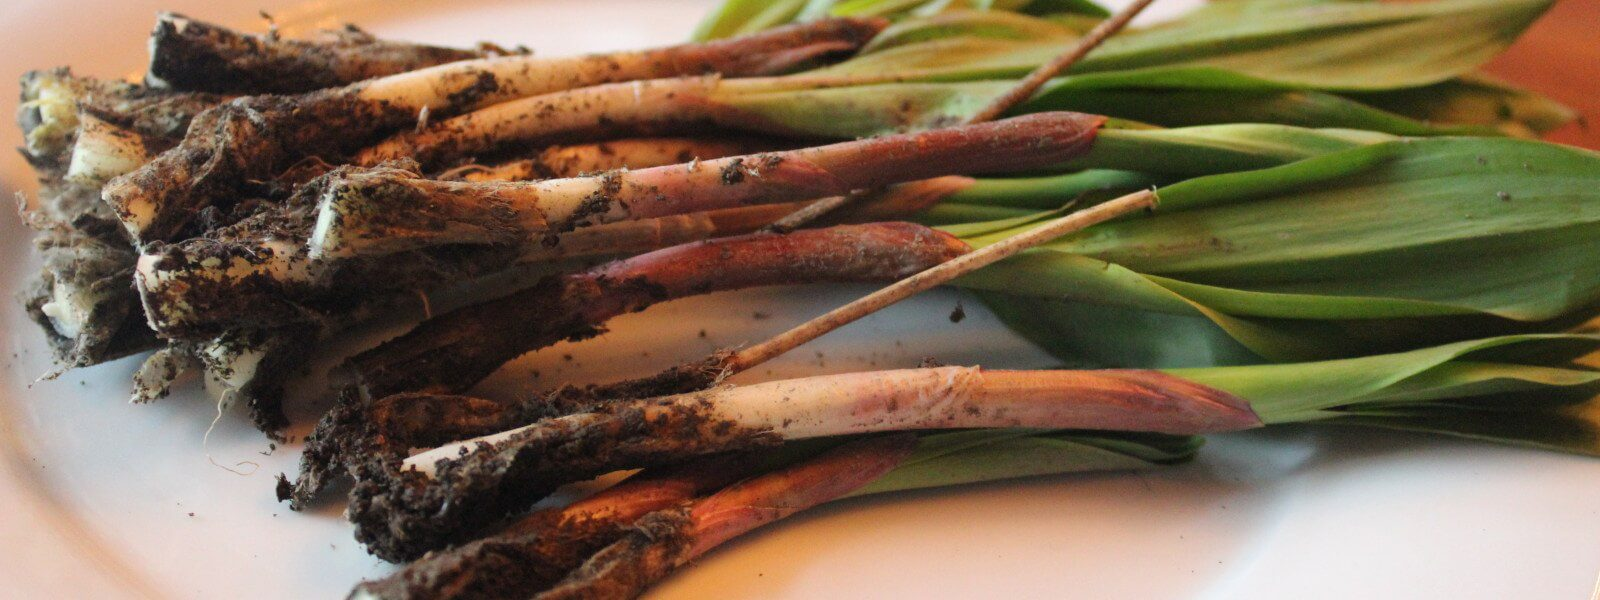 Freshly-picked ramps on a plate.